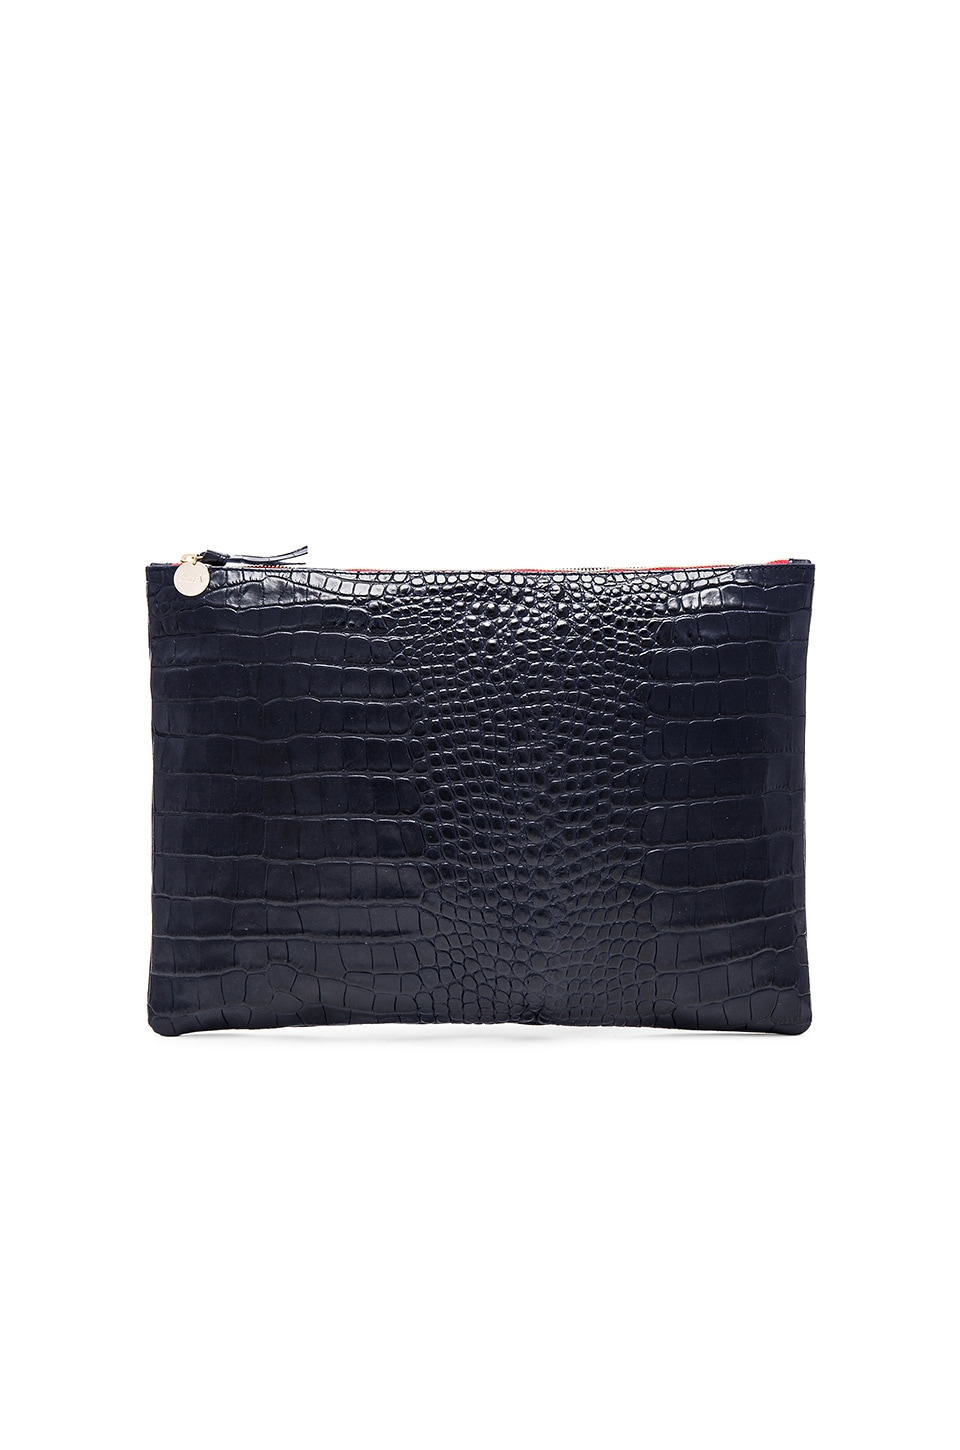 Clare V. Oversize Clutch in Ink Croco